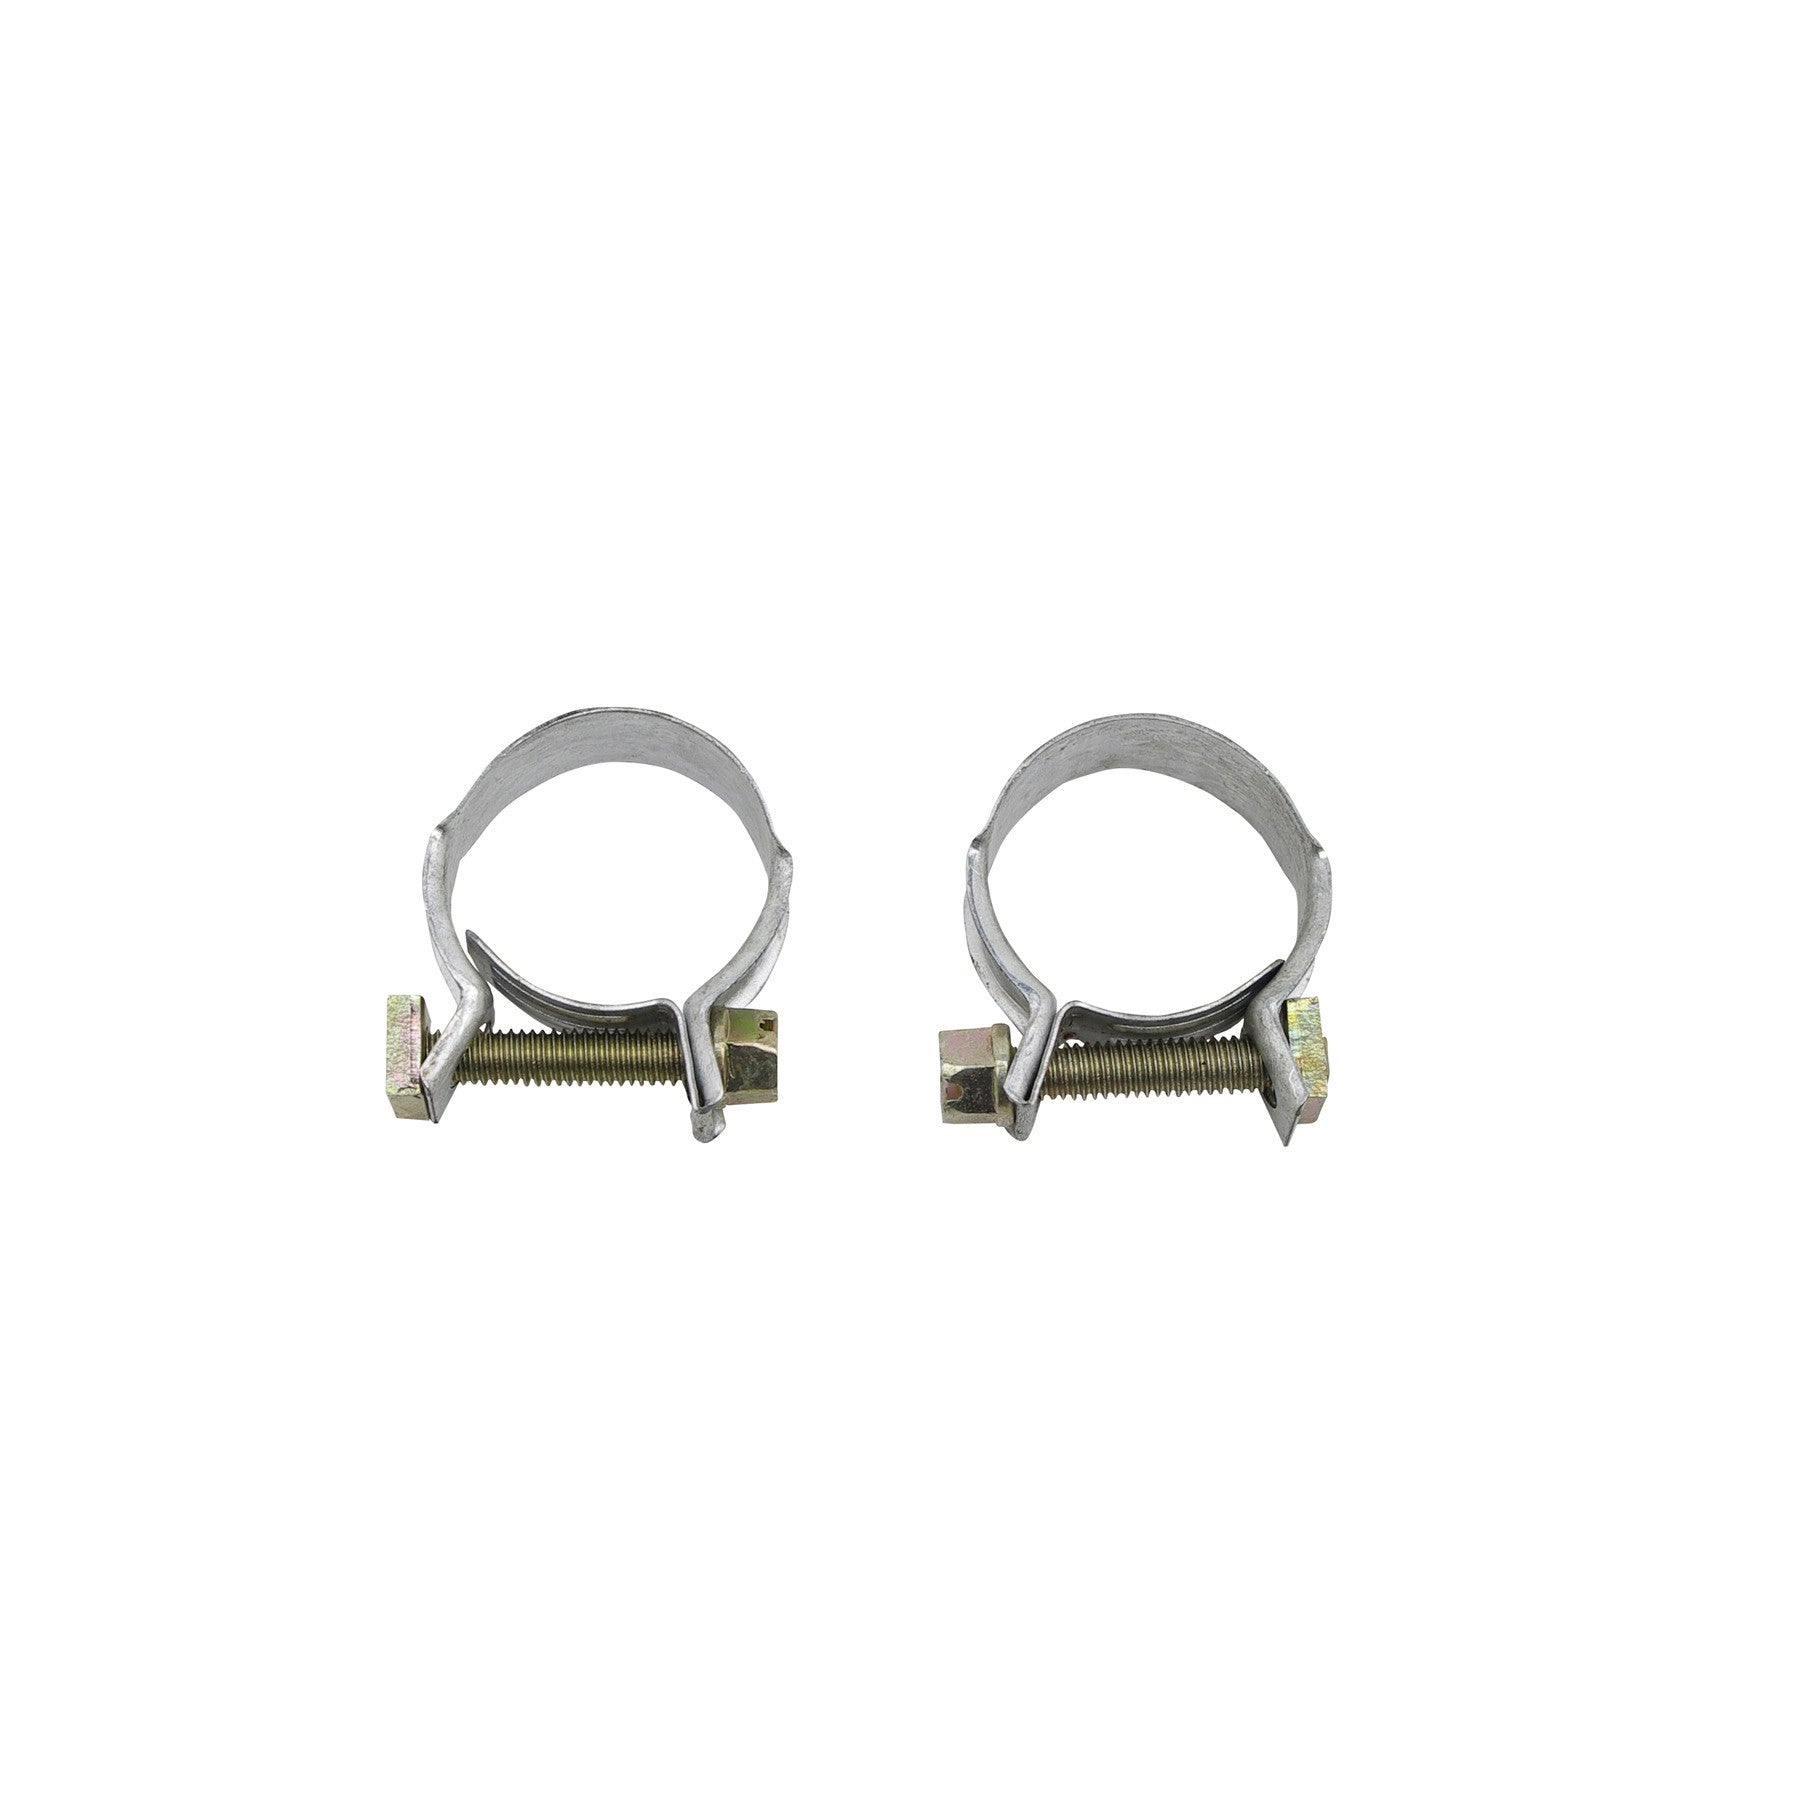 "Laguna 1/2"" Hose Clamp for PT400 (2/pack), PT705 - Pond Supplies 4 Less"